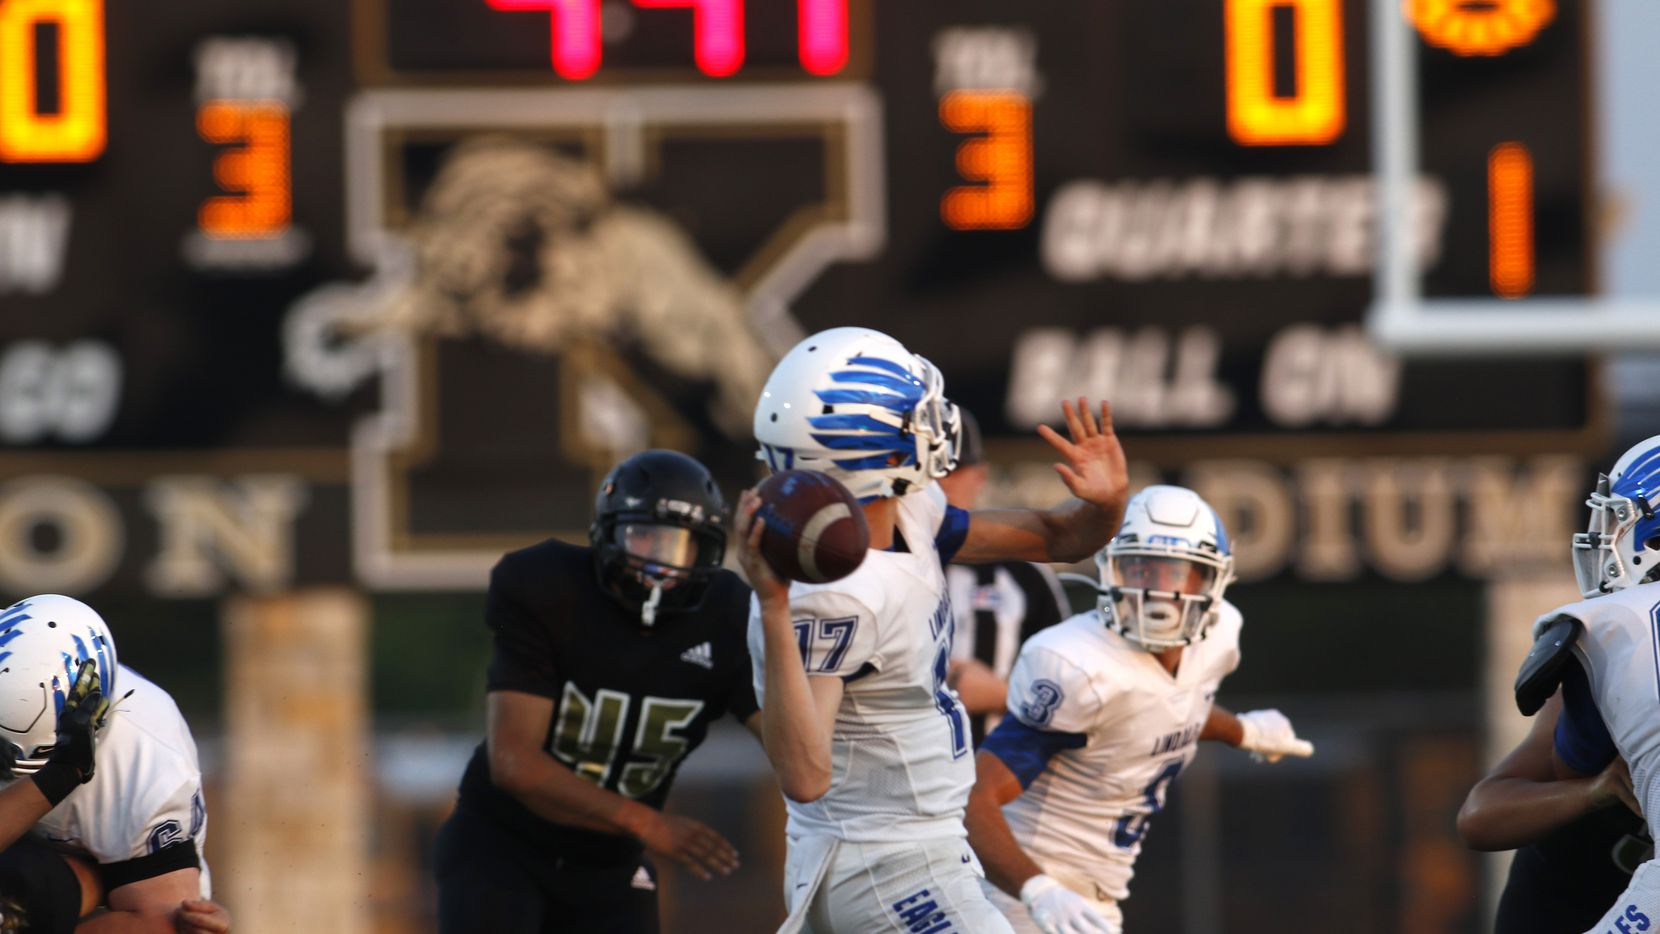 Lindale quarterback Sam Peterson (17) prepares to launch a long pass downfield during the 1st quarter of their season opener against Kaufman.The game was played at Lions Stadium on the campus of Kaufman High School in Kaufman on August 28, 2020.